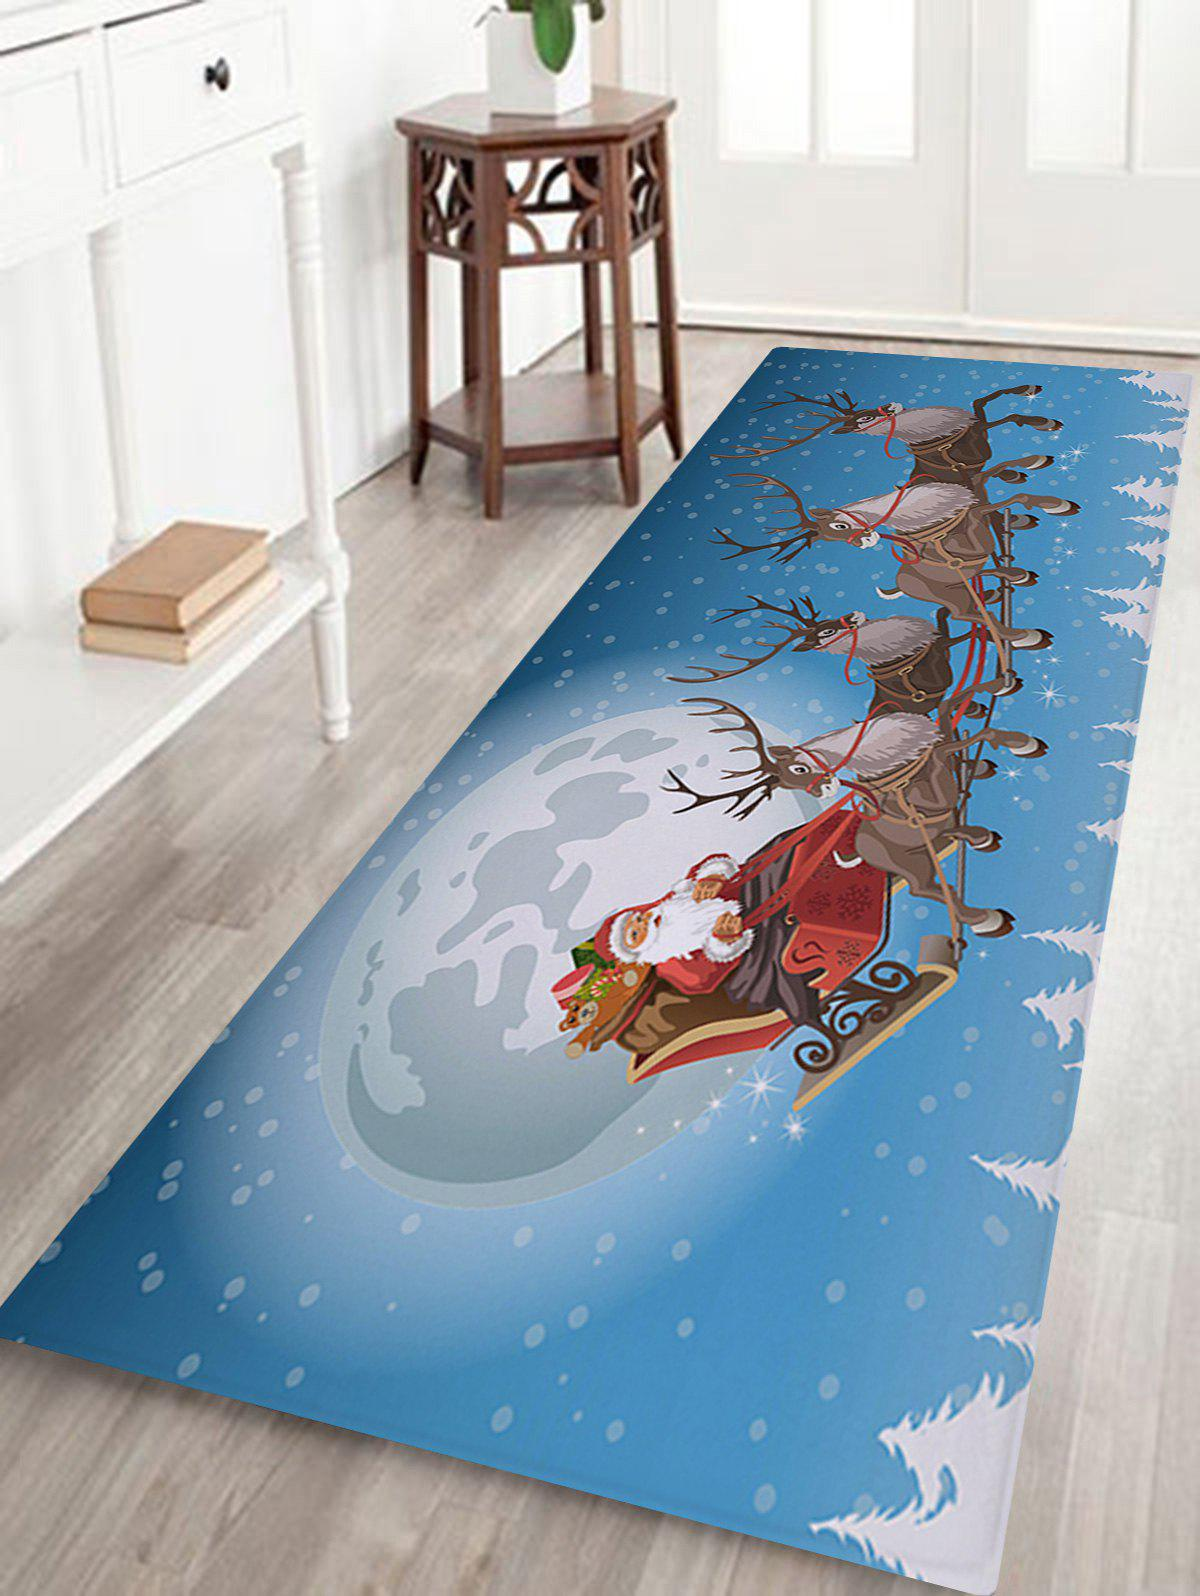 Christmas Moon Sled Print Nonslip Coral Fleece Bath MatHOME<br><br>Size: W24 INCH * L71 INCH; Color: SKY BLUE; Products Type: Bath rugs; Materials: Coral FLeece; Pattern: Elk,Moon,Santa Claus; Style: Festival; Shape: Rectangular; Package Contents: 1 x Rug;